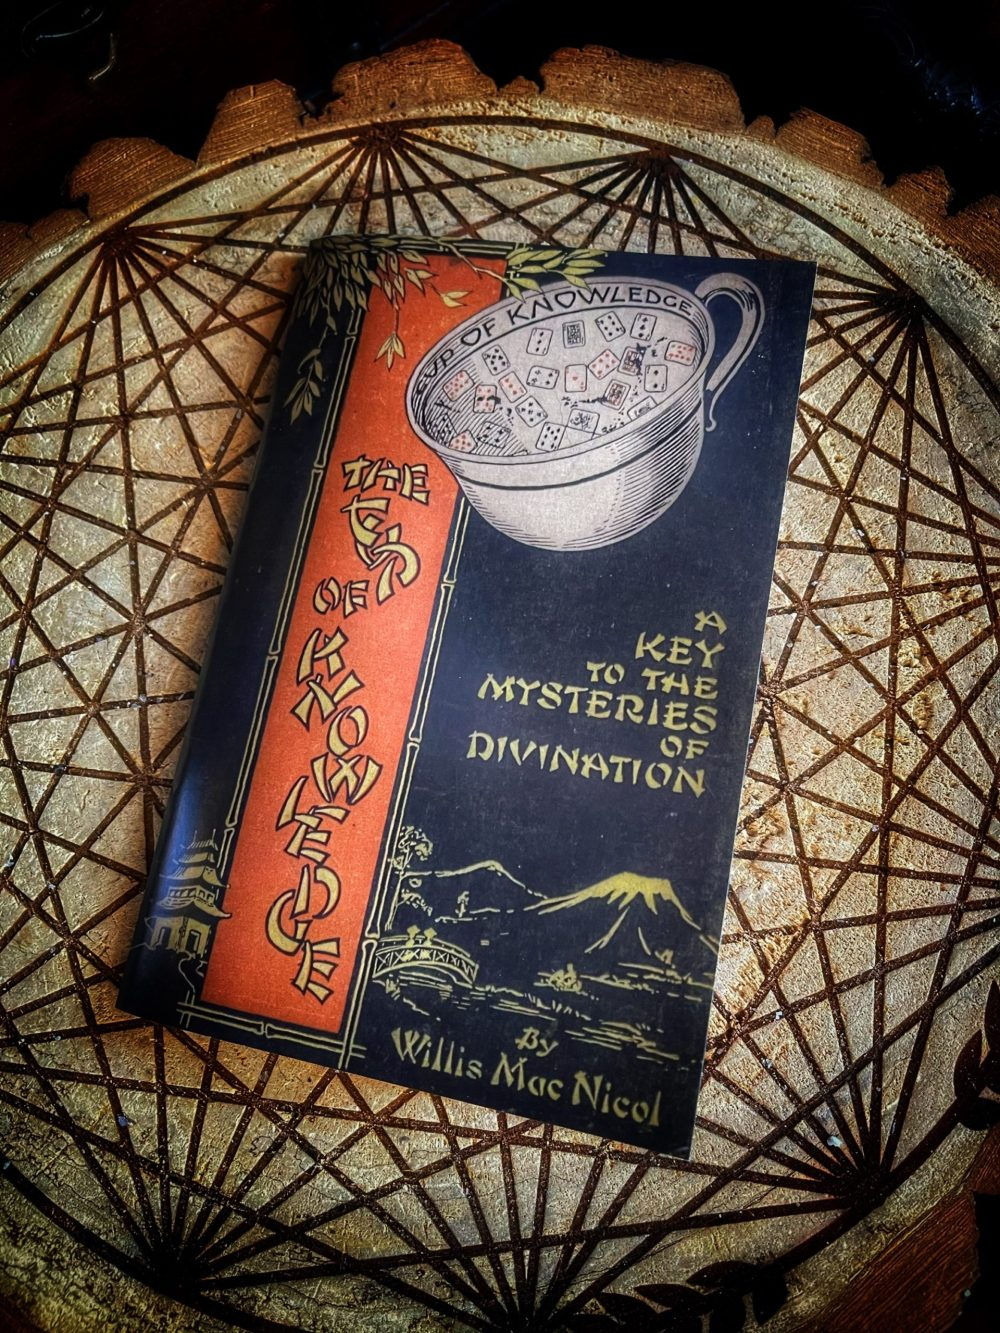 The Cup of Knowledge: A Key to the Mysteries Of Divination Book